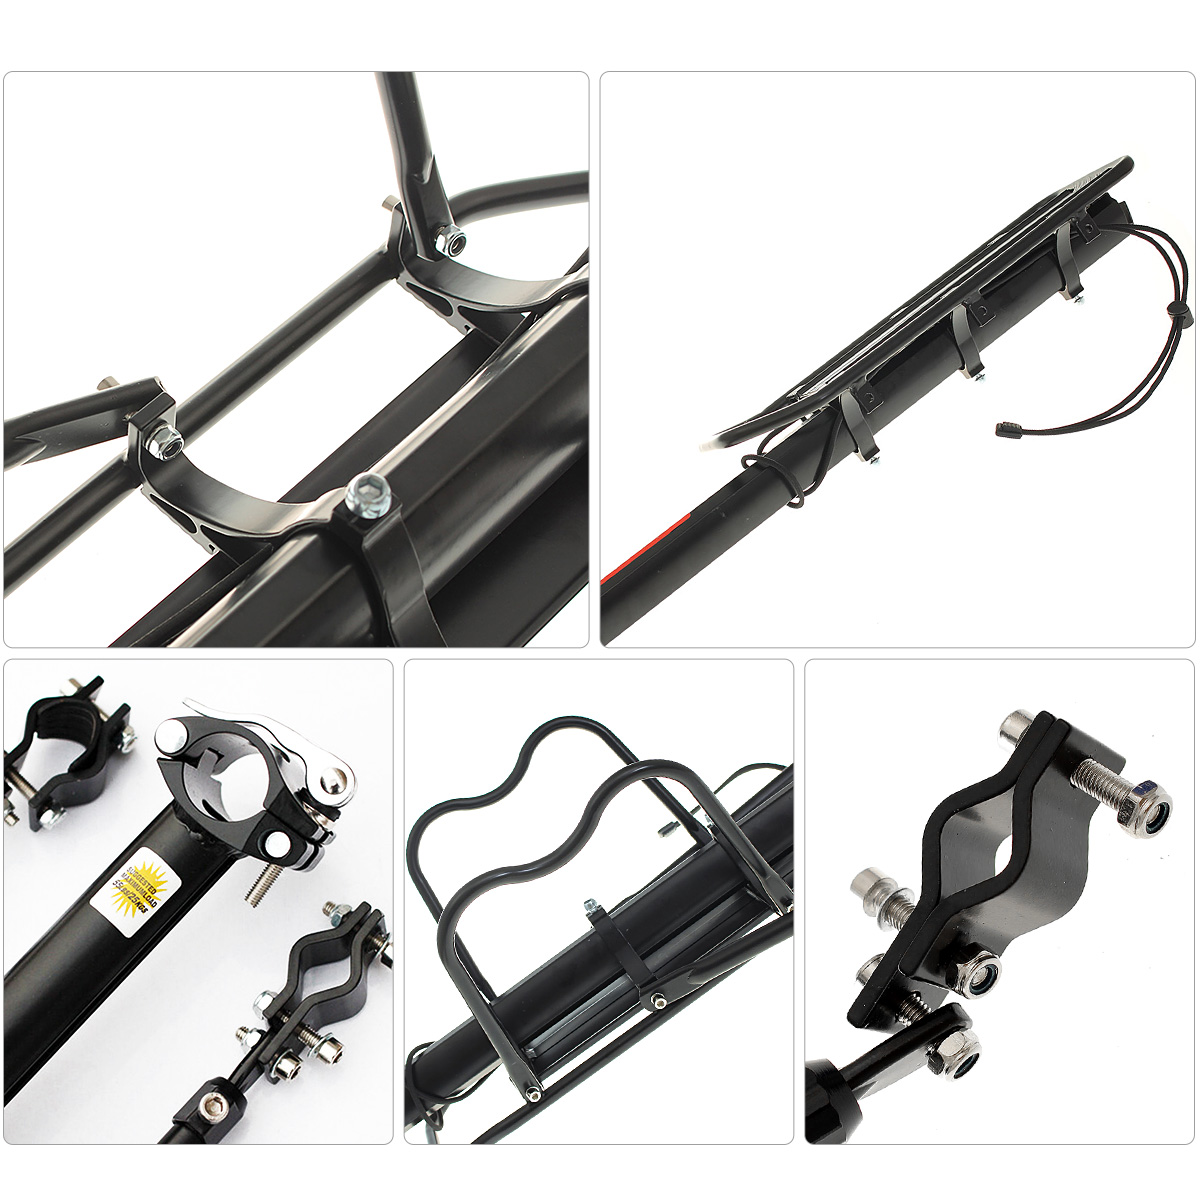 BIKIGHT Bike Cargo Racks Alloy Rear Rack Seat Carrier Full Quick Release Luggage Protect Pannier